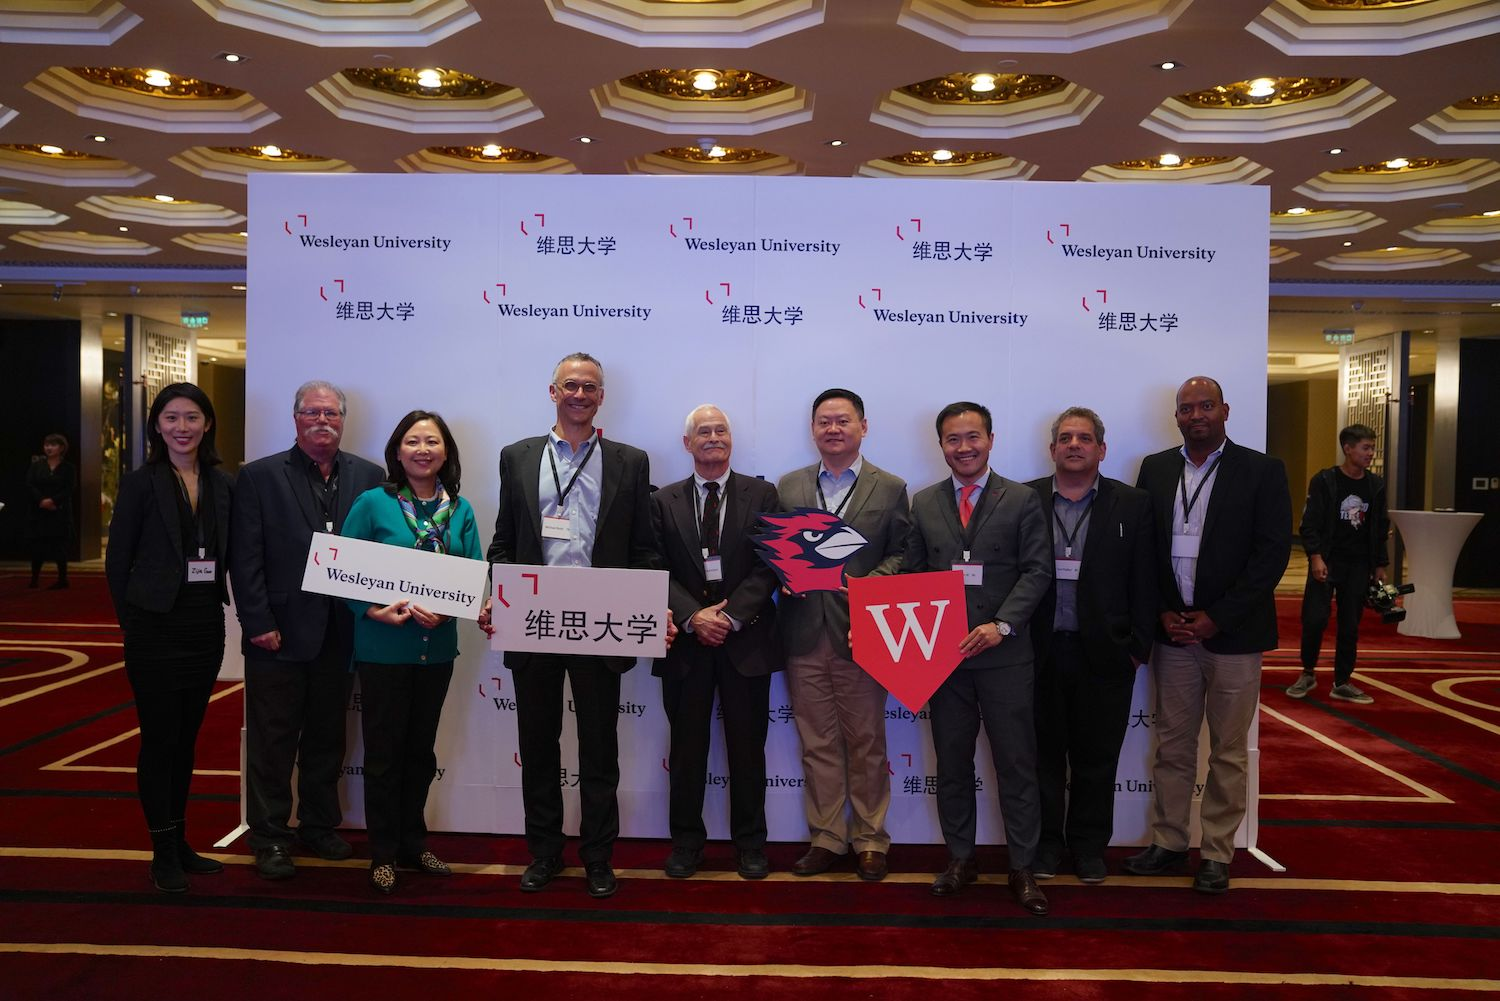 From left, Program Manager for Global Initiatives Zijia Guo, Chernoff, Zhu, Roth, Adelstein, Xie, Ai, Plafker, Vice President for Advancement Frantz Williams at the forum.